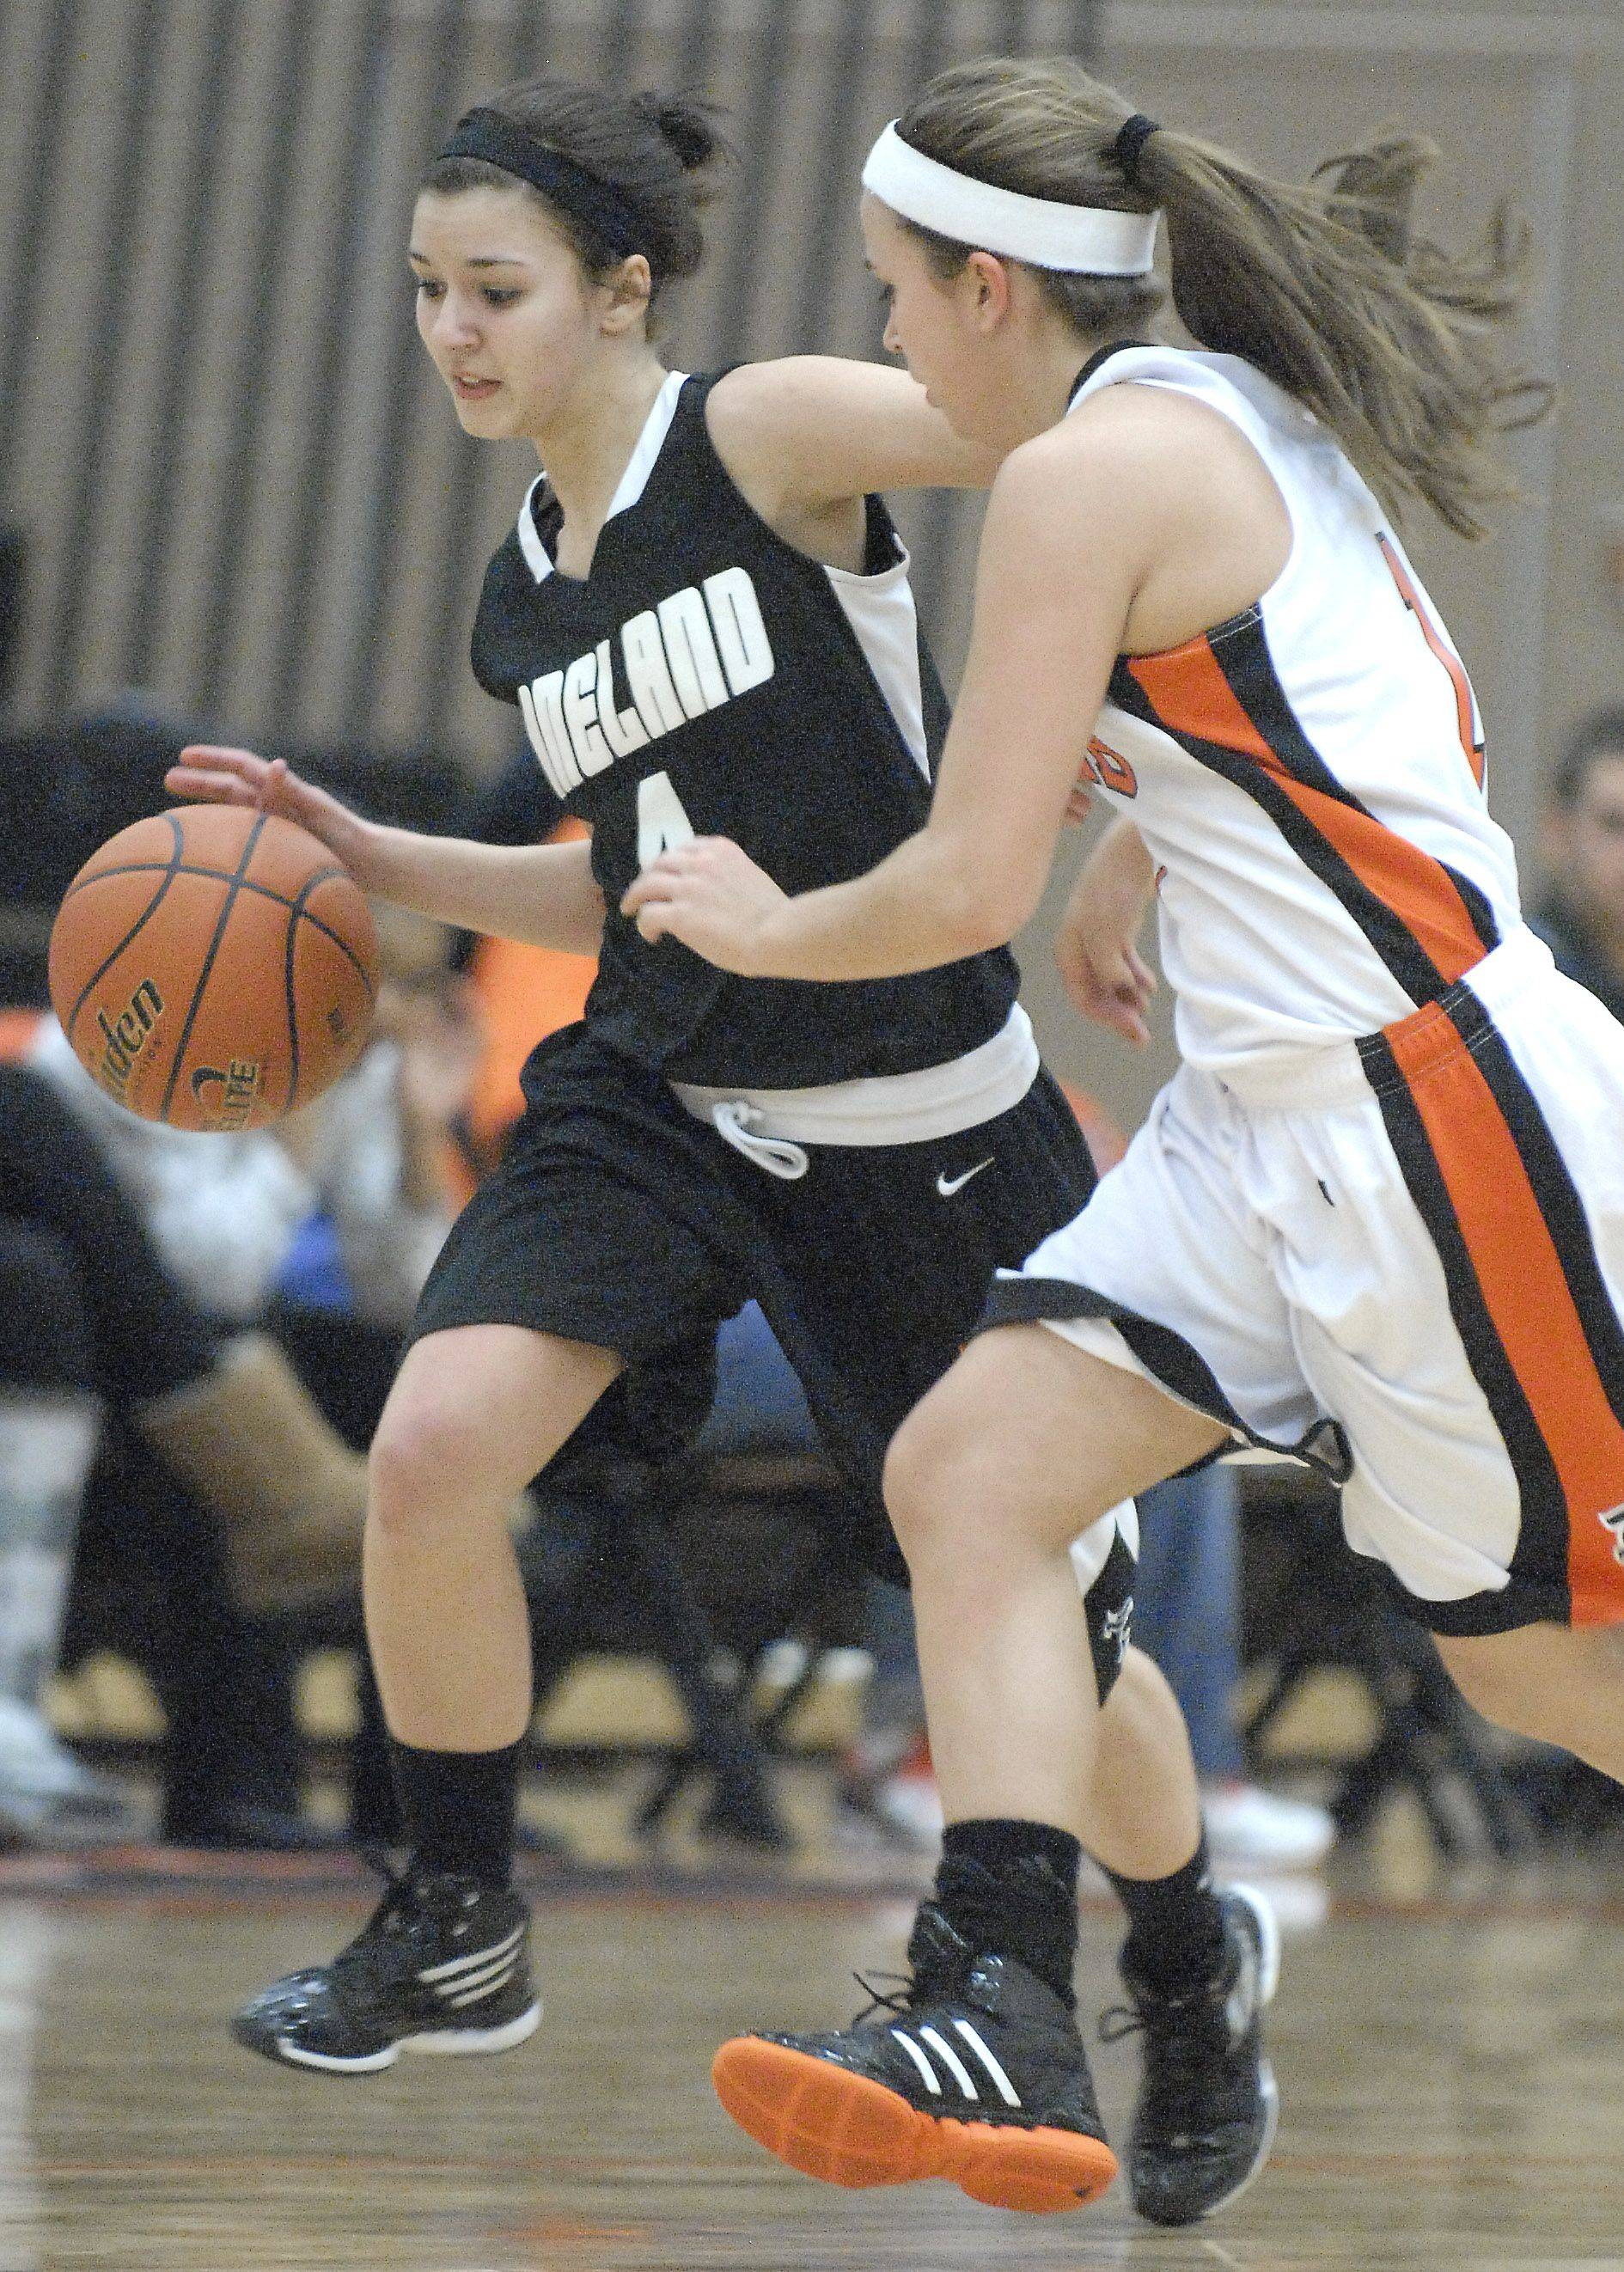 Kaneland's Alli Liss runs head-to-head on the way to the hoop with DeKalb's Alli Smith in the third quarter.